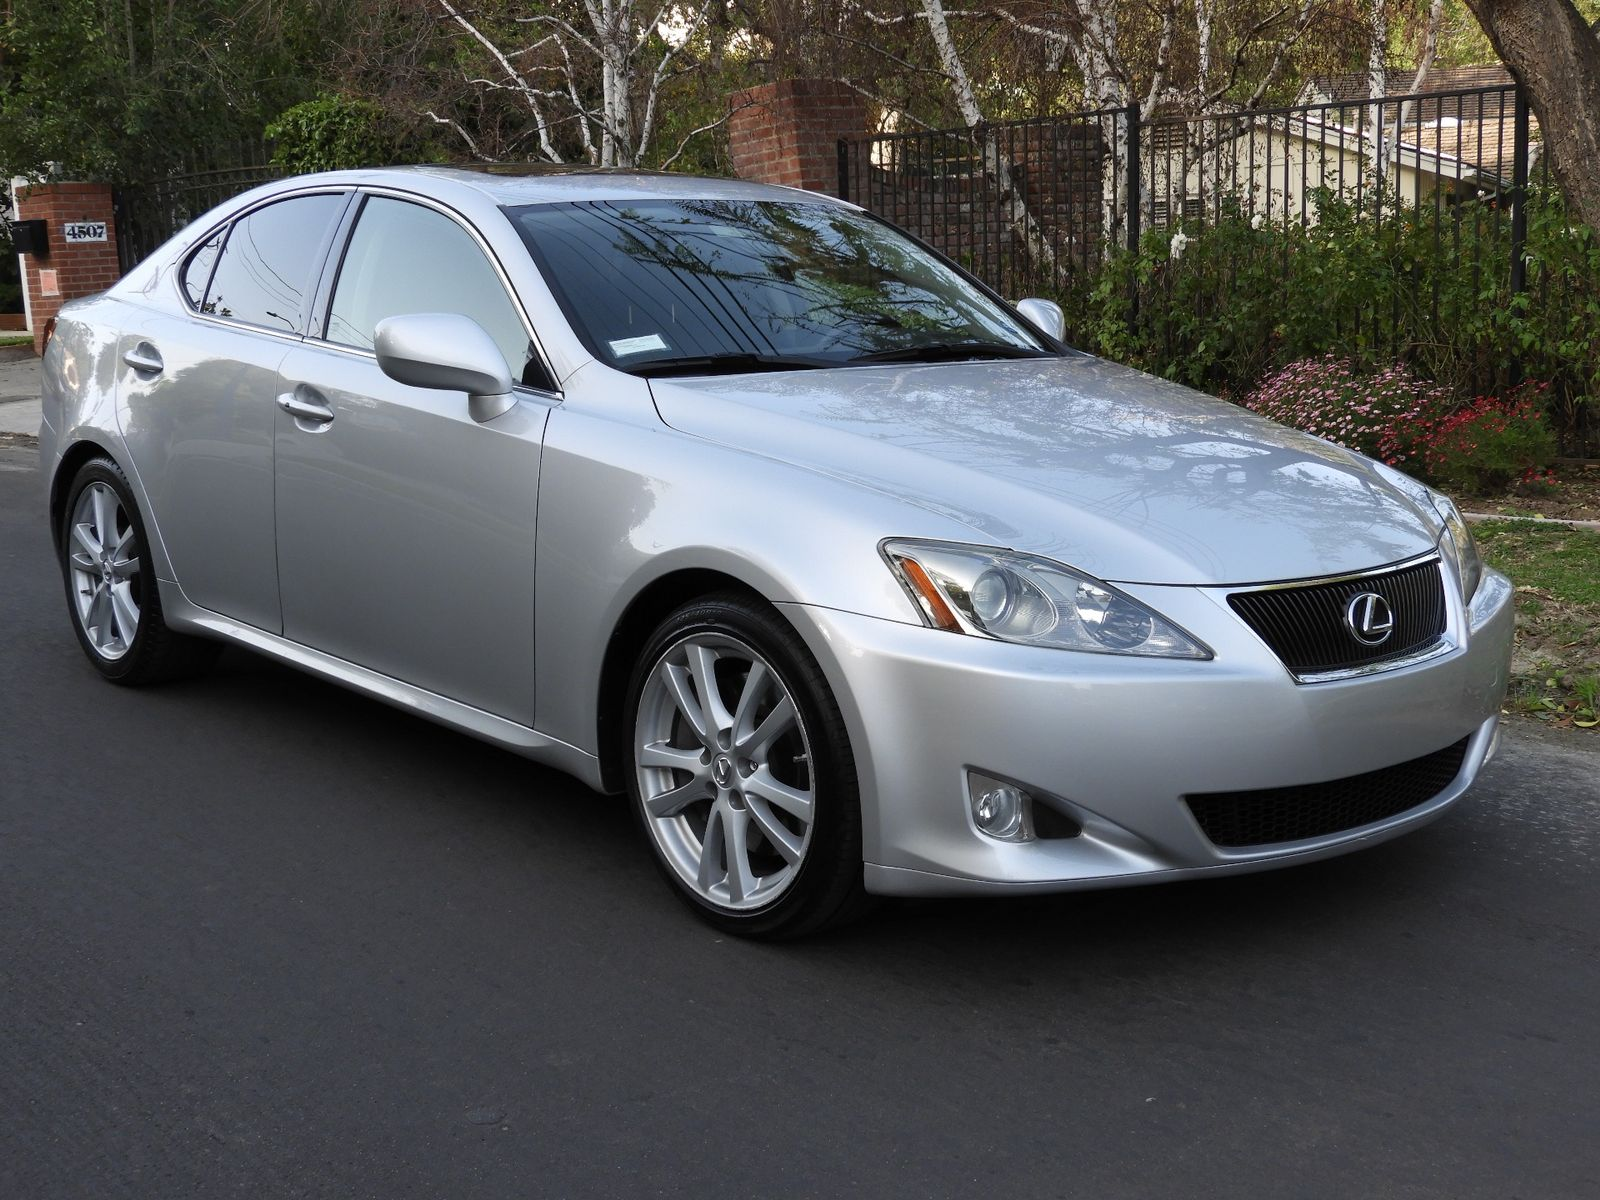 2006 lexus is 350 auto city california auto fitness class benz. Black Bedroom Furniture Sets. Home Design Ideas